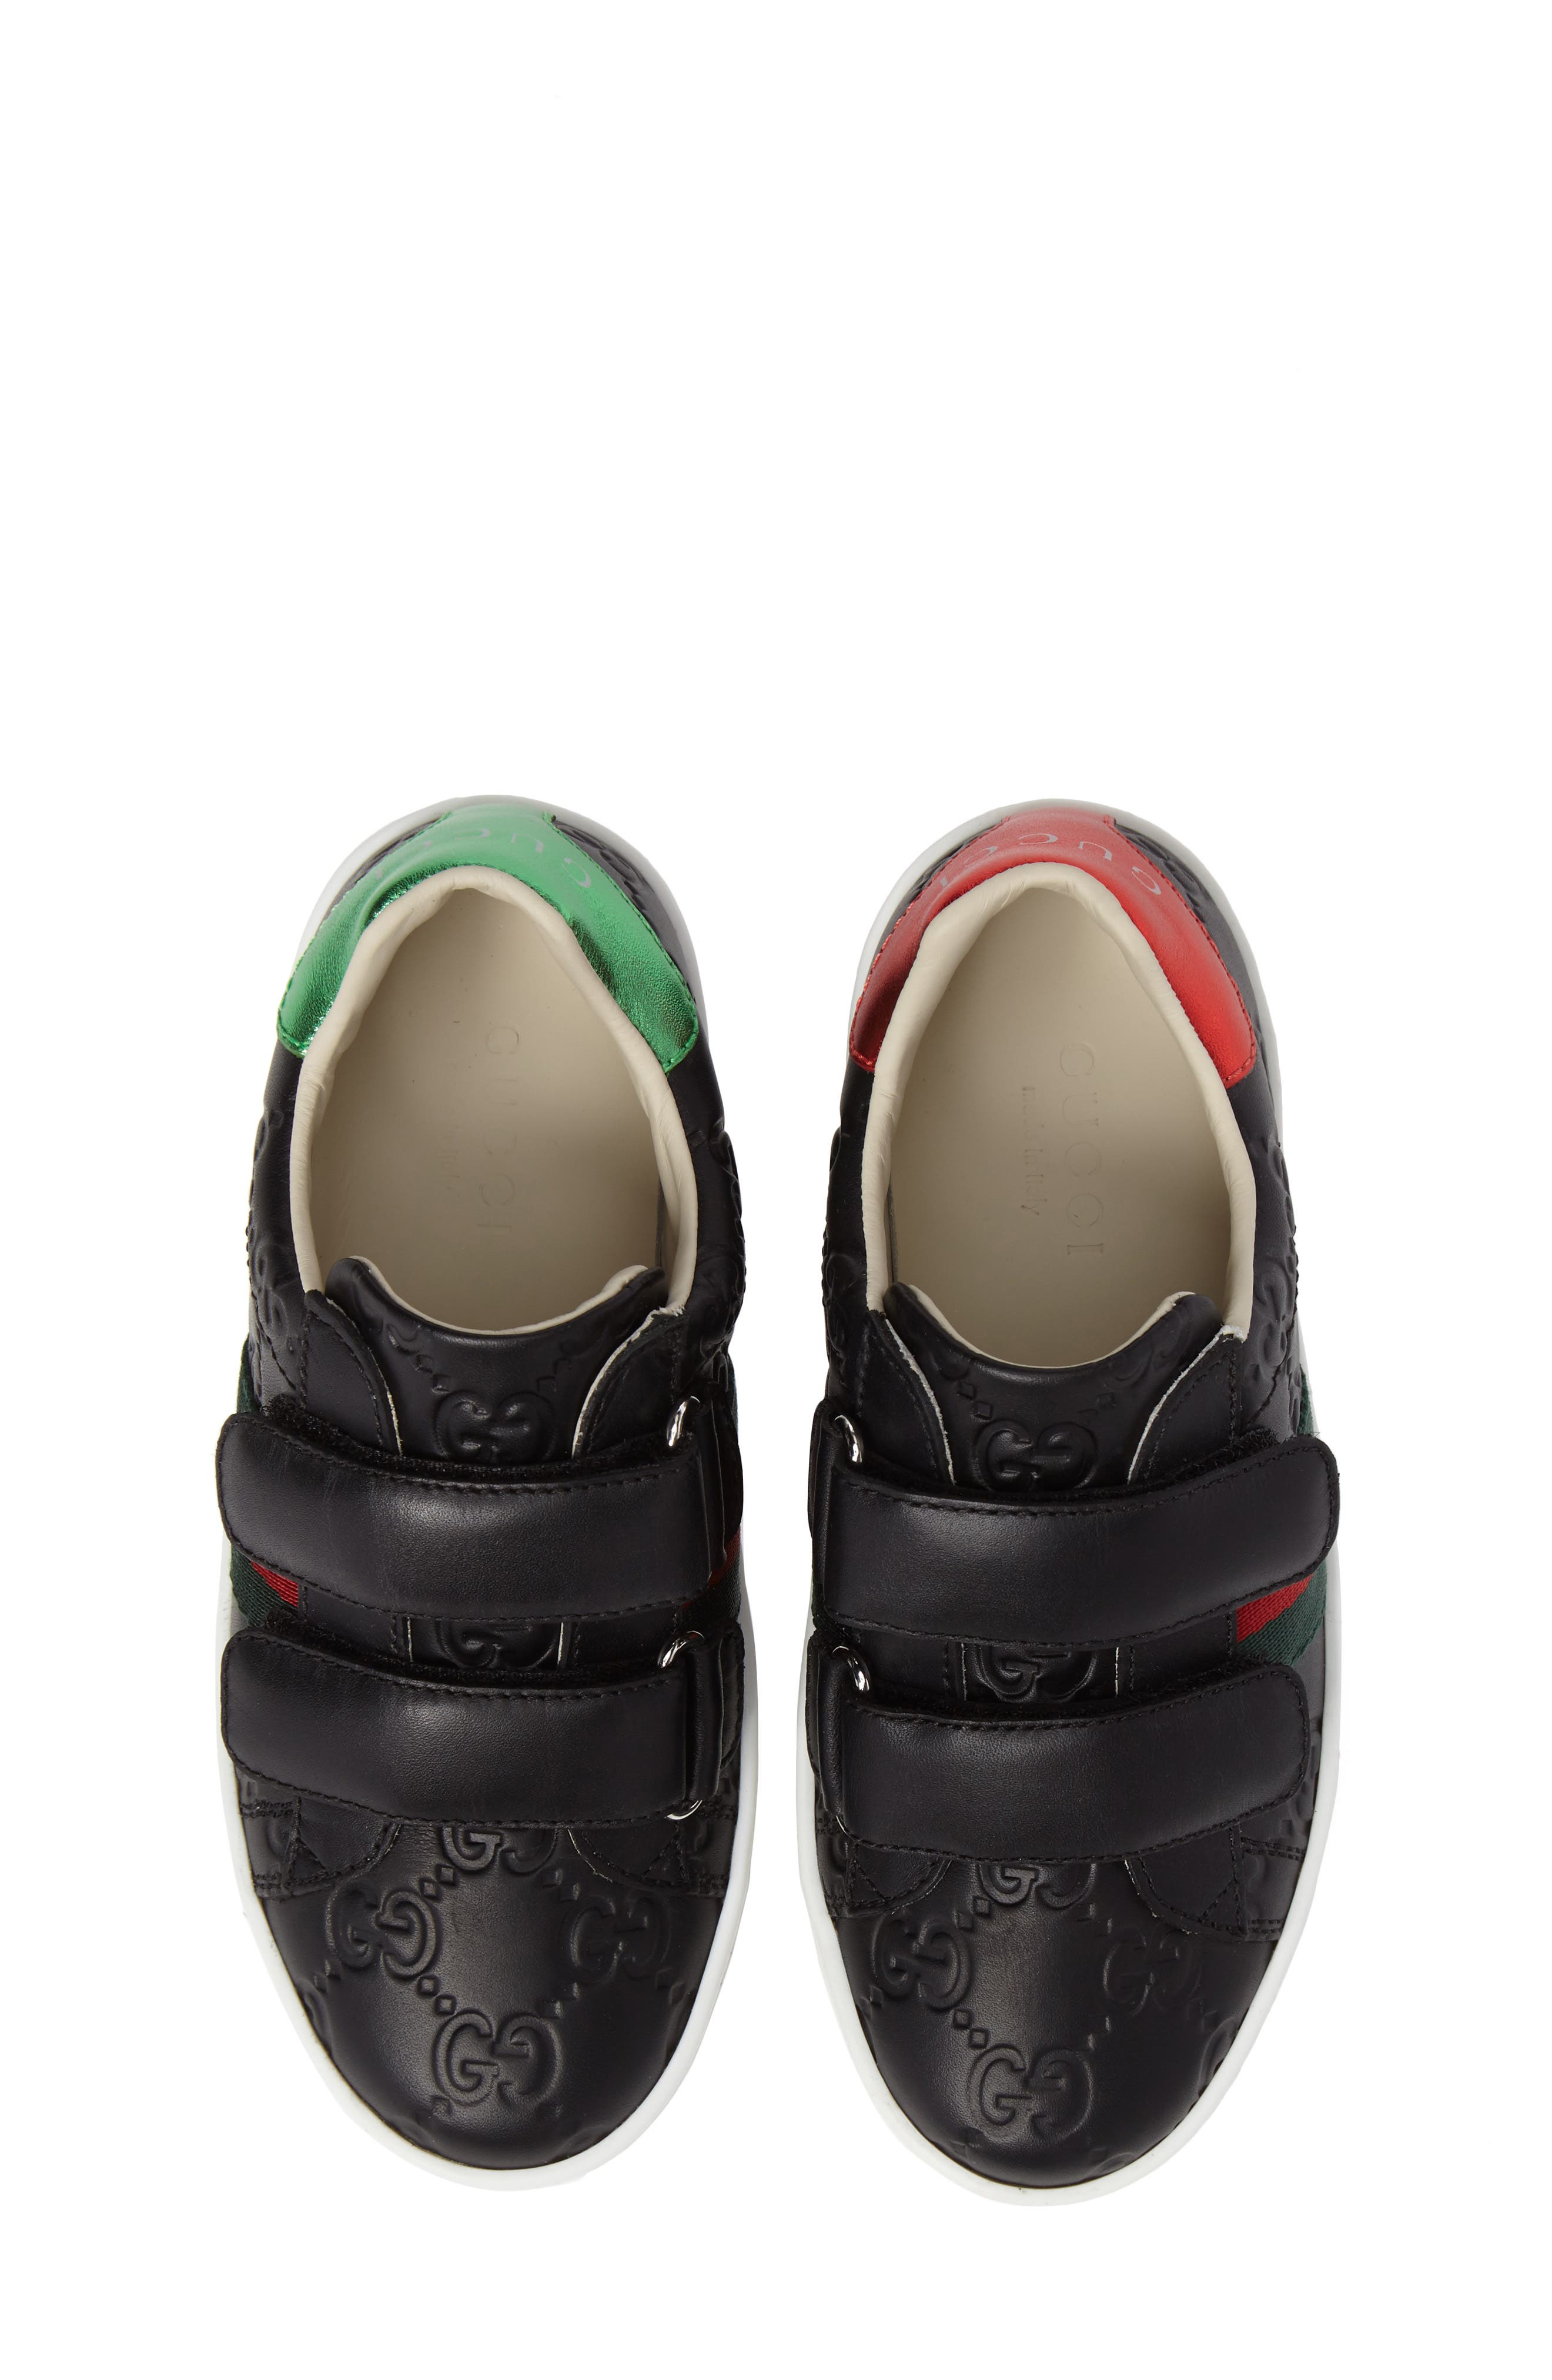 Alternate Image 1 Selected - Gucci New Ace Sneaker (Toddler & Little Kid)